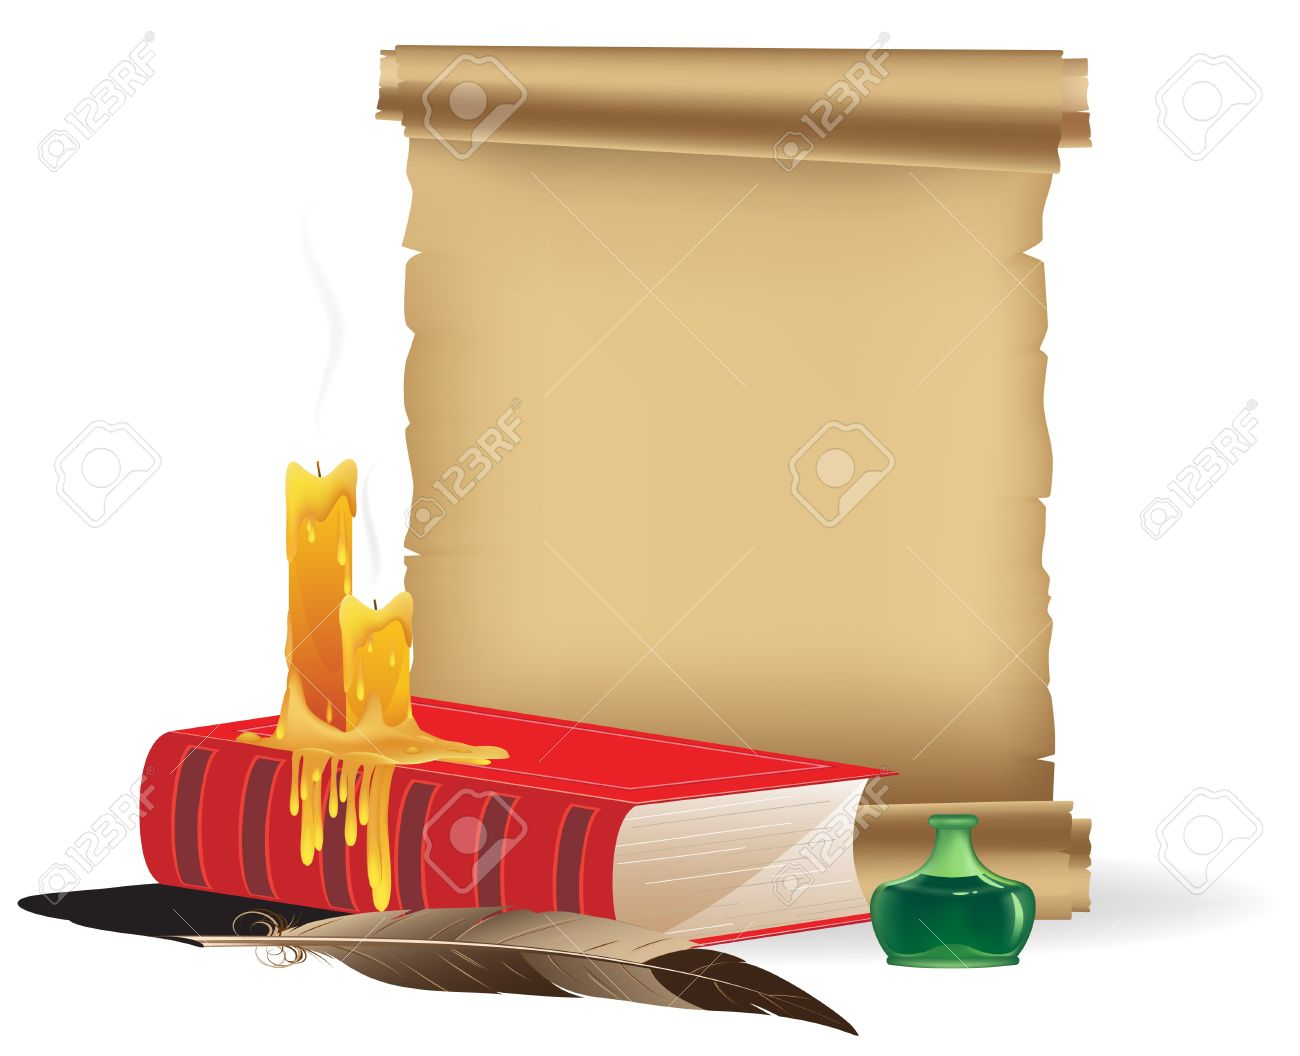 Book, candles, parchment, inkwell and a feather on a white background Stock Vector - 16704312